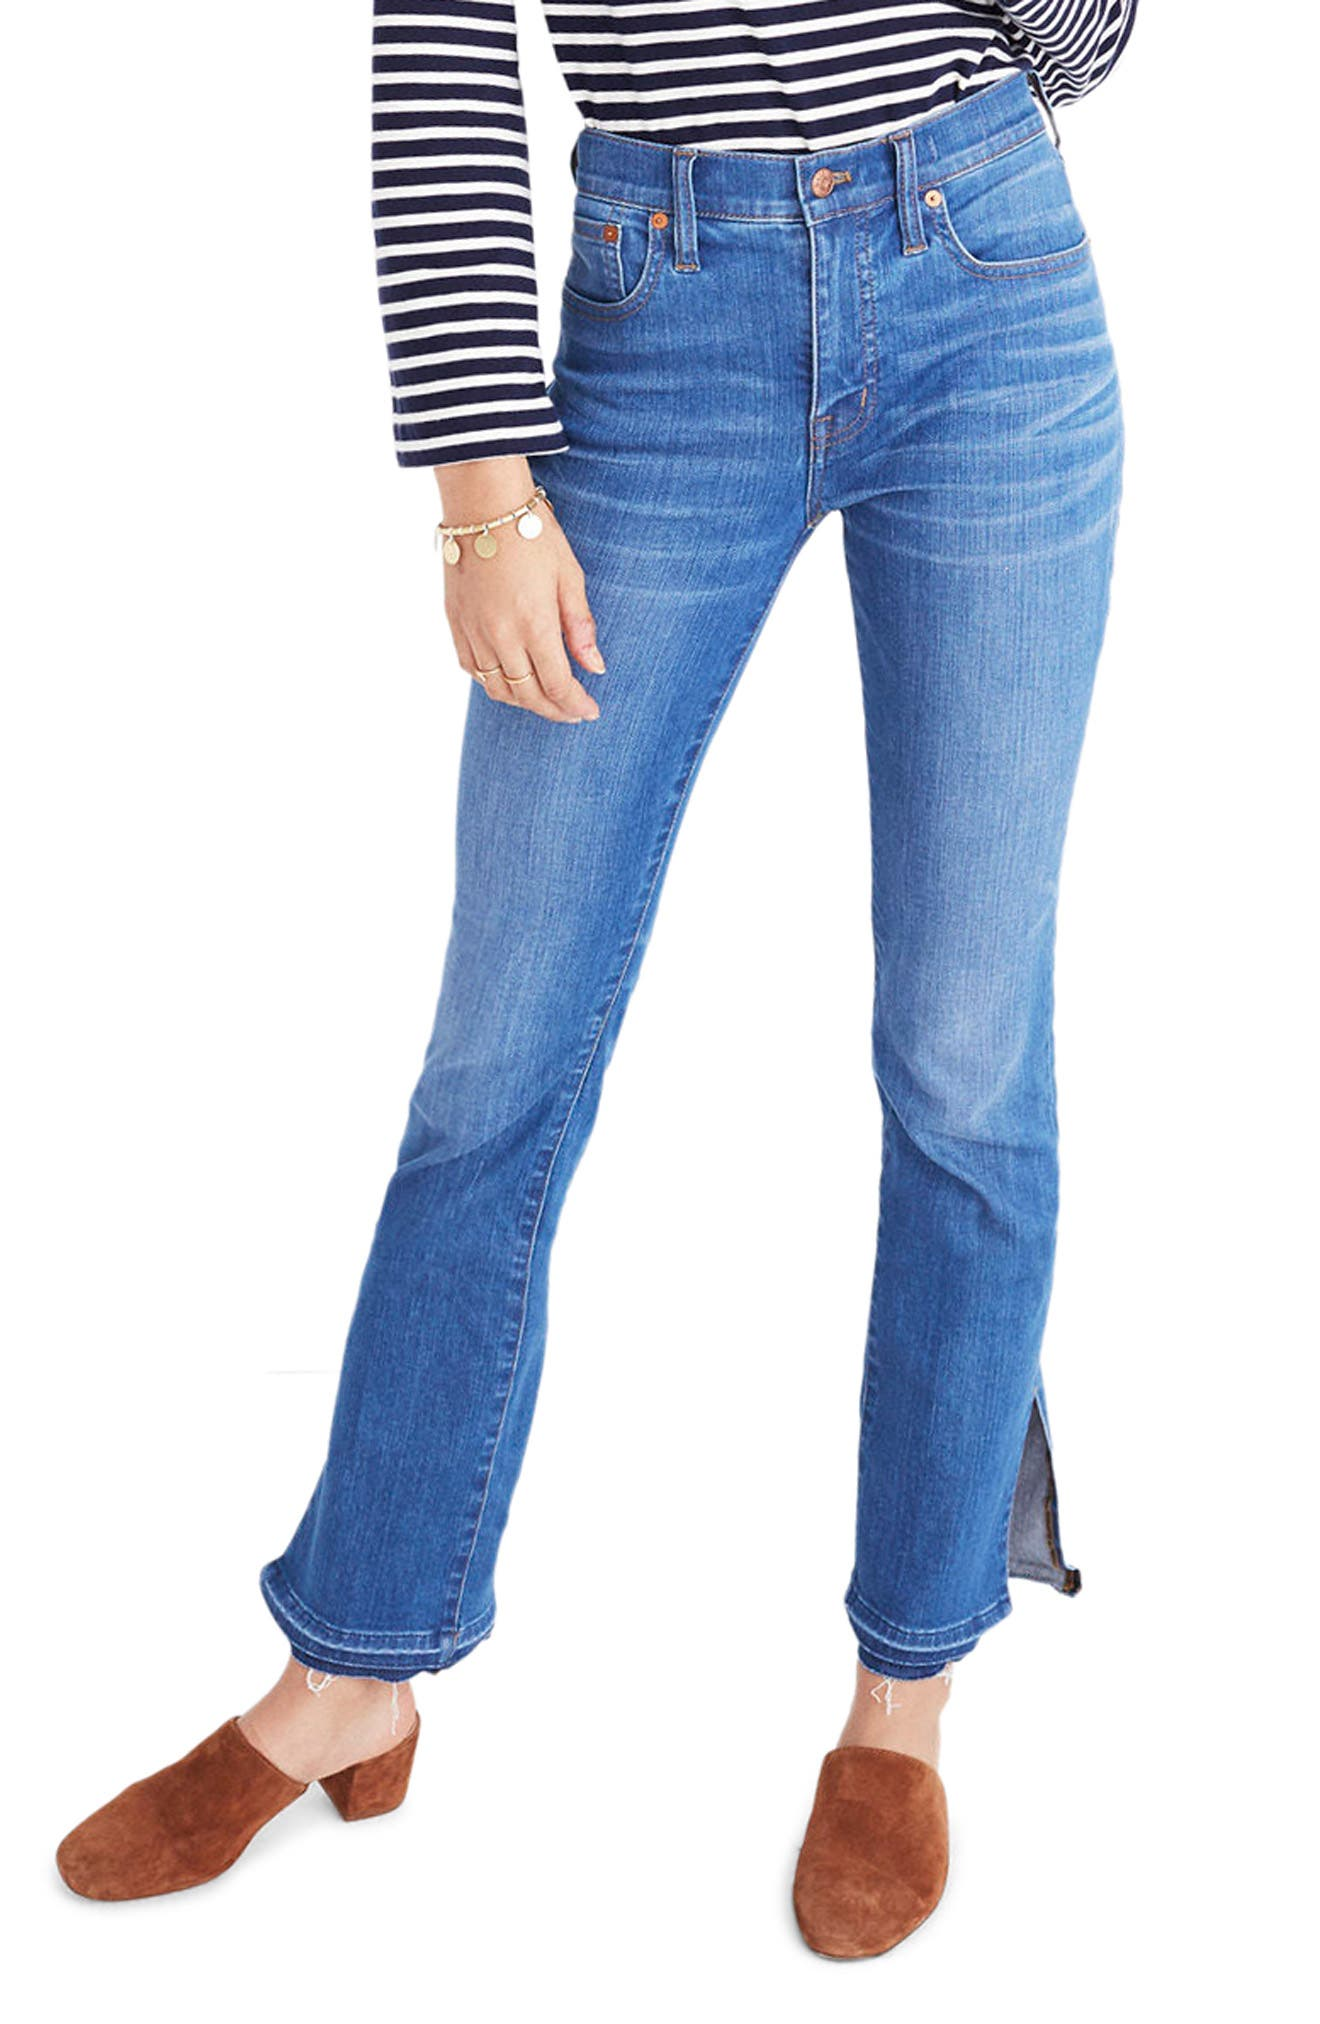 Alternate Image 1 Selected - Madewell Cali Split Hem Demi Boot Jeans (Joan Wash)